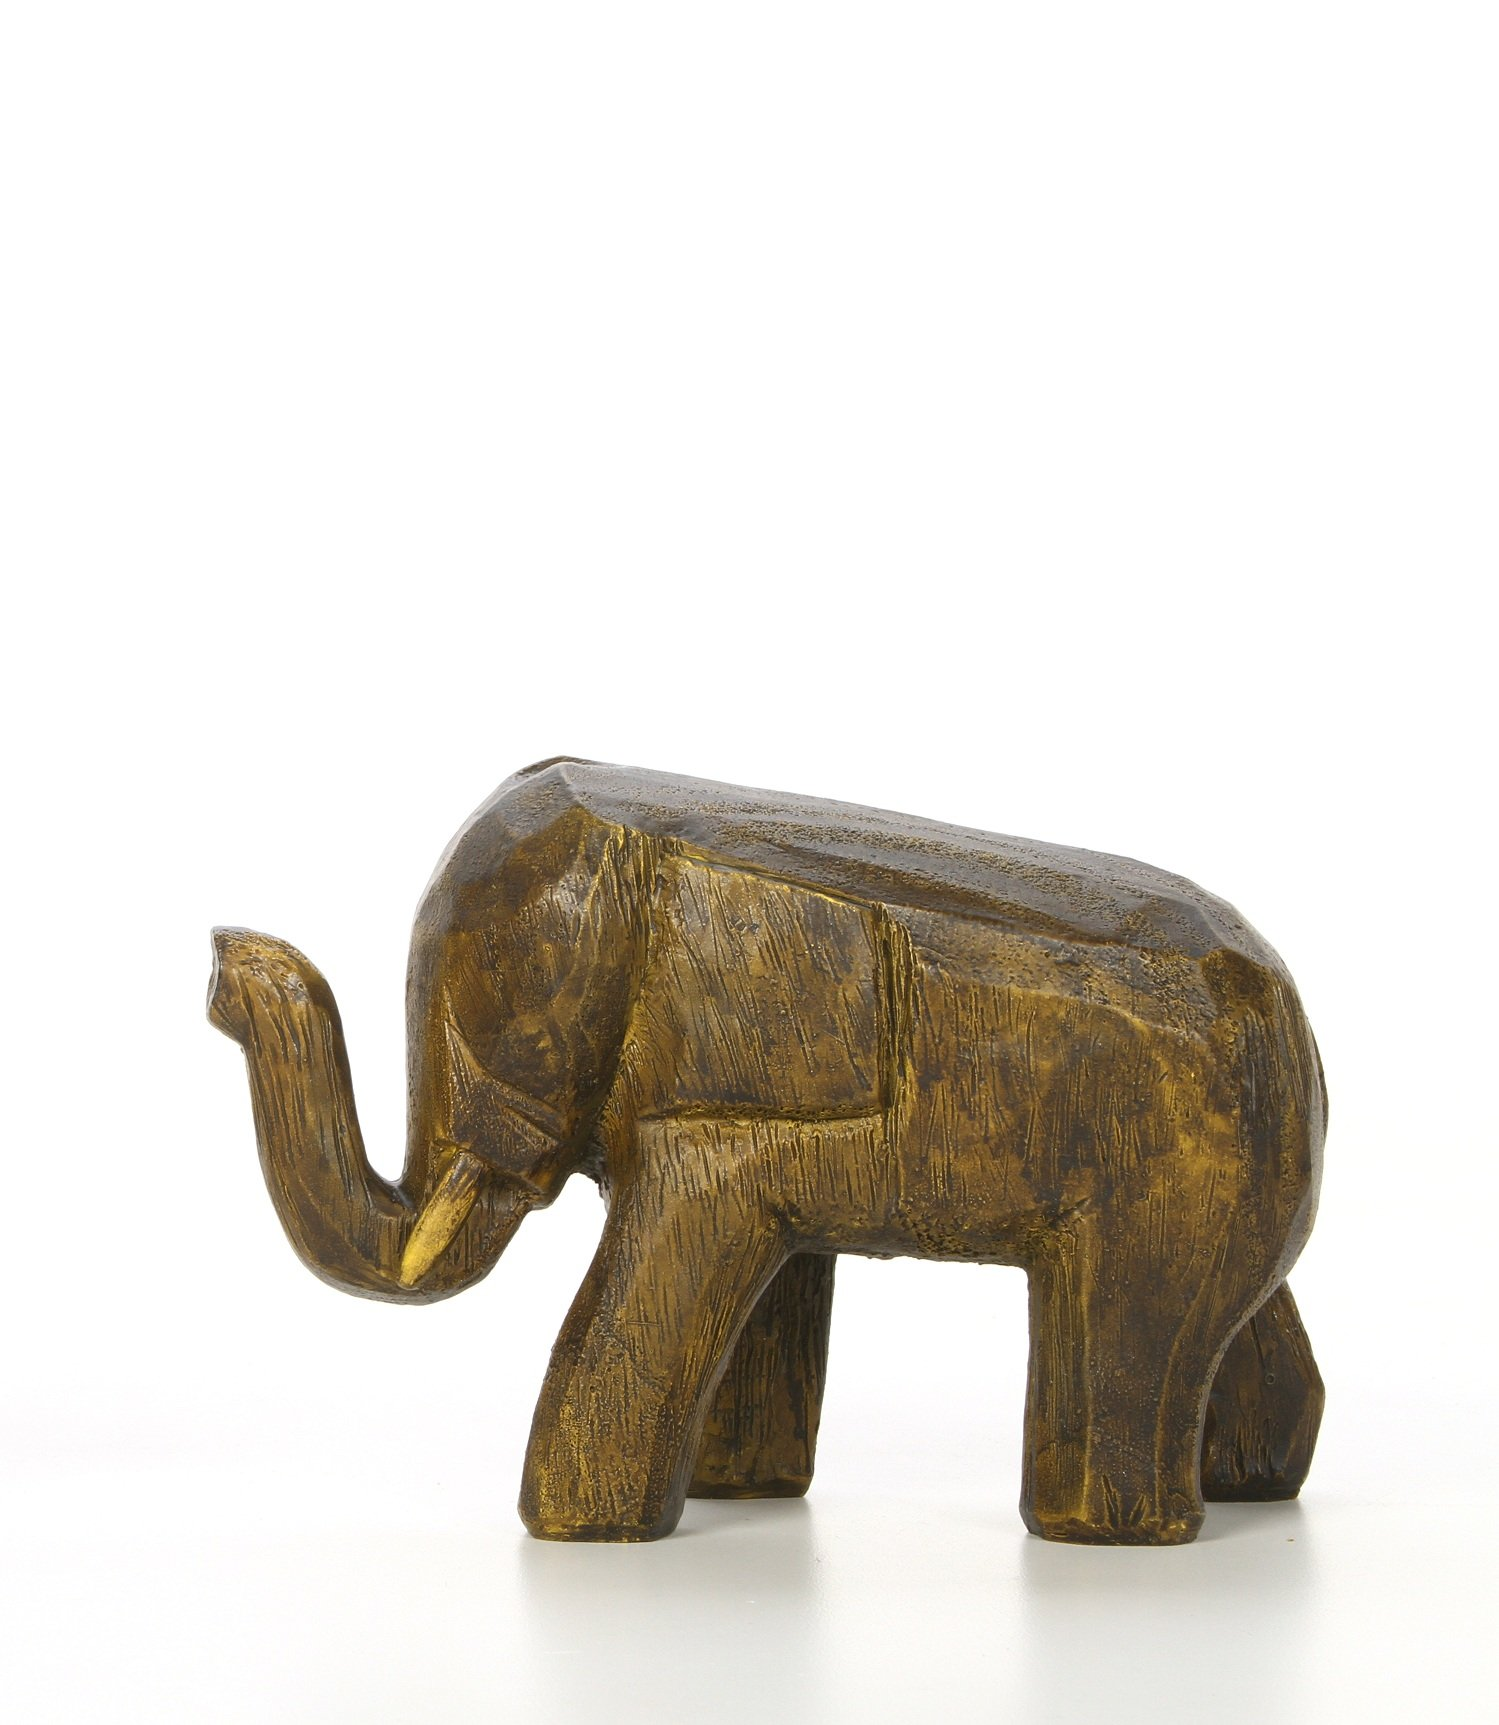 Hosley 4.7'' High, Decorative Tabletop Faux Wood Elephant, Brown. Ideal Gift for Wedding, Home, Party Favor, Spa, Reiki, Meditation, Bathroom Settings O9